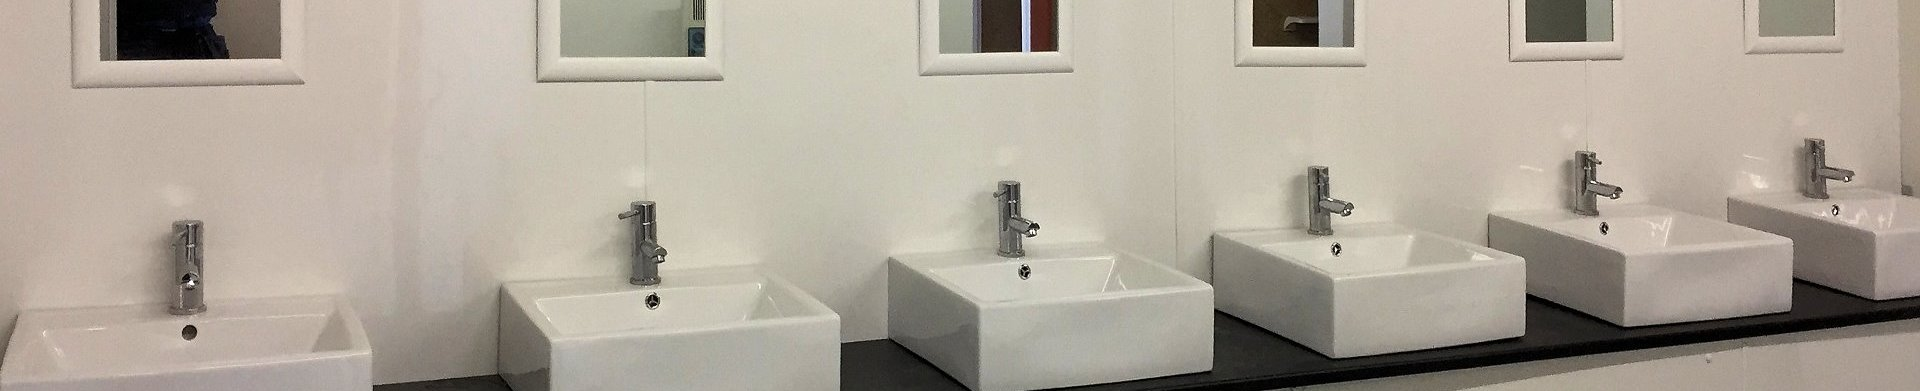 Camp site shower block with belfast sinks in bathroom installations